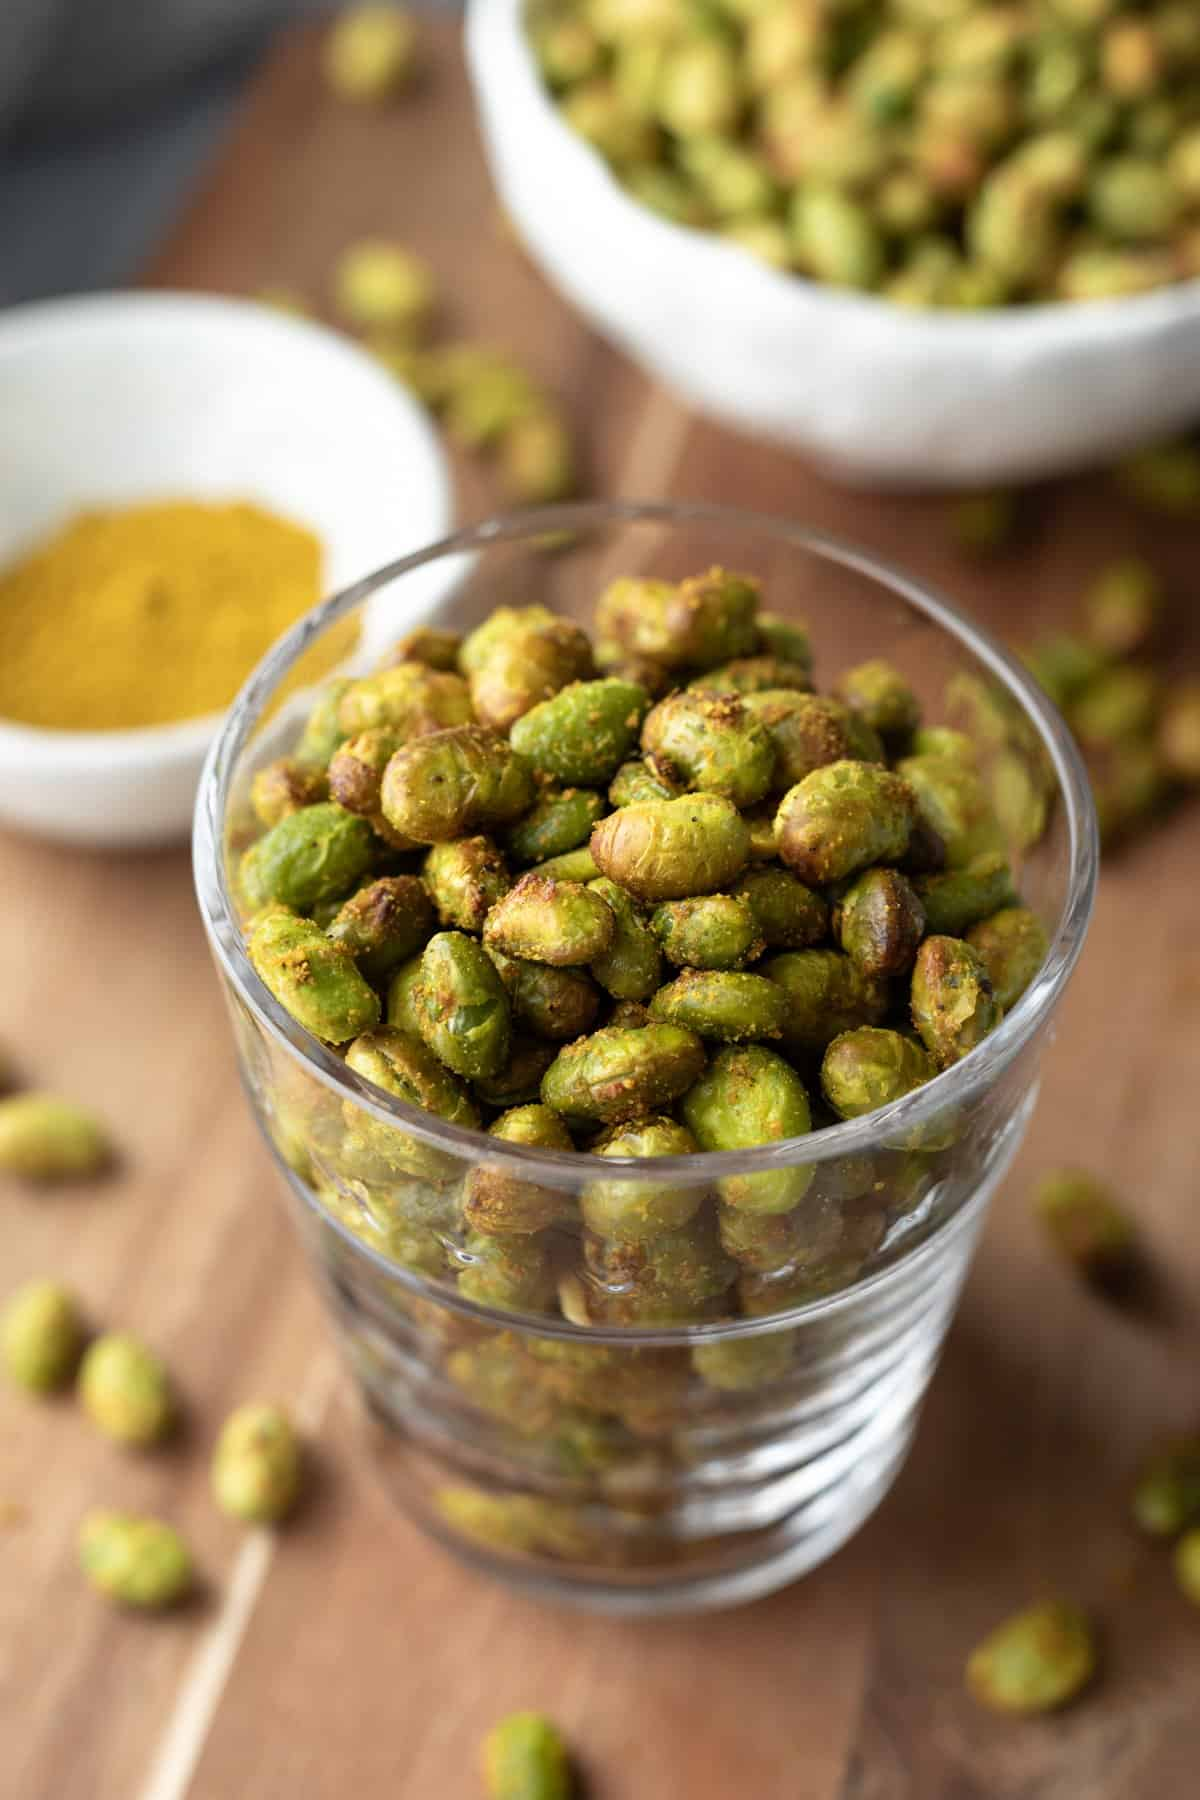 close up of cooked edamame in a glass.